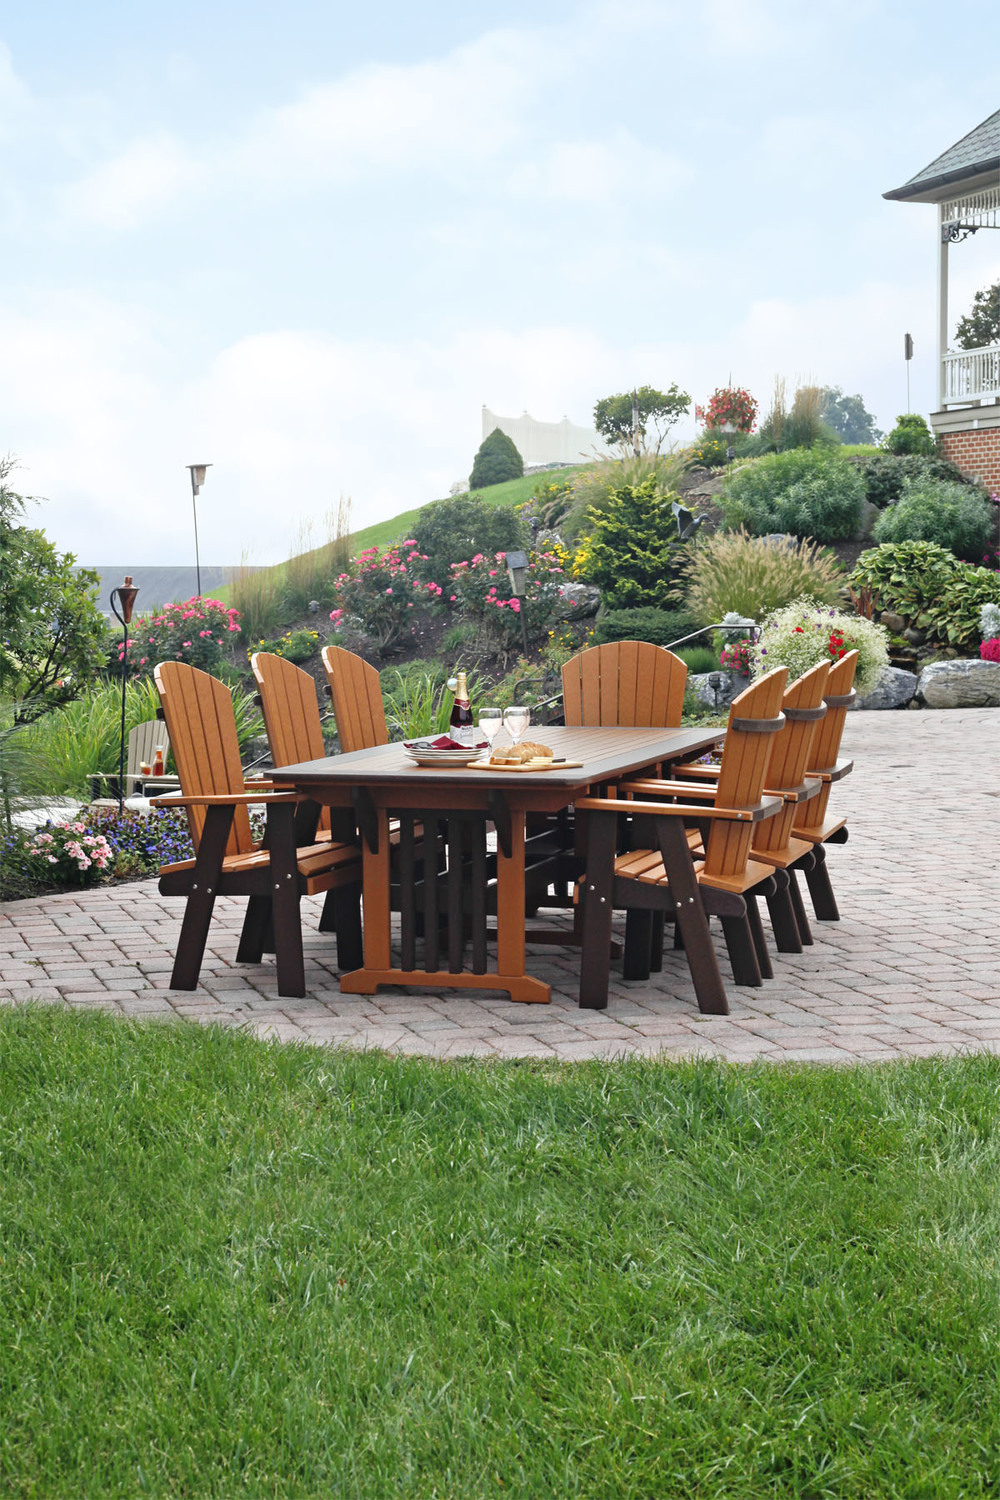 The English Garden collection has a touch of elegance that is reminiscent of old English styles. Bringing a delightful touch to your outdoor seating and dining needs.